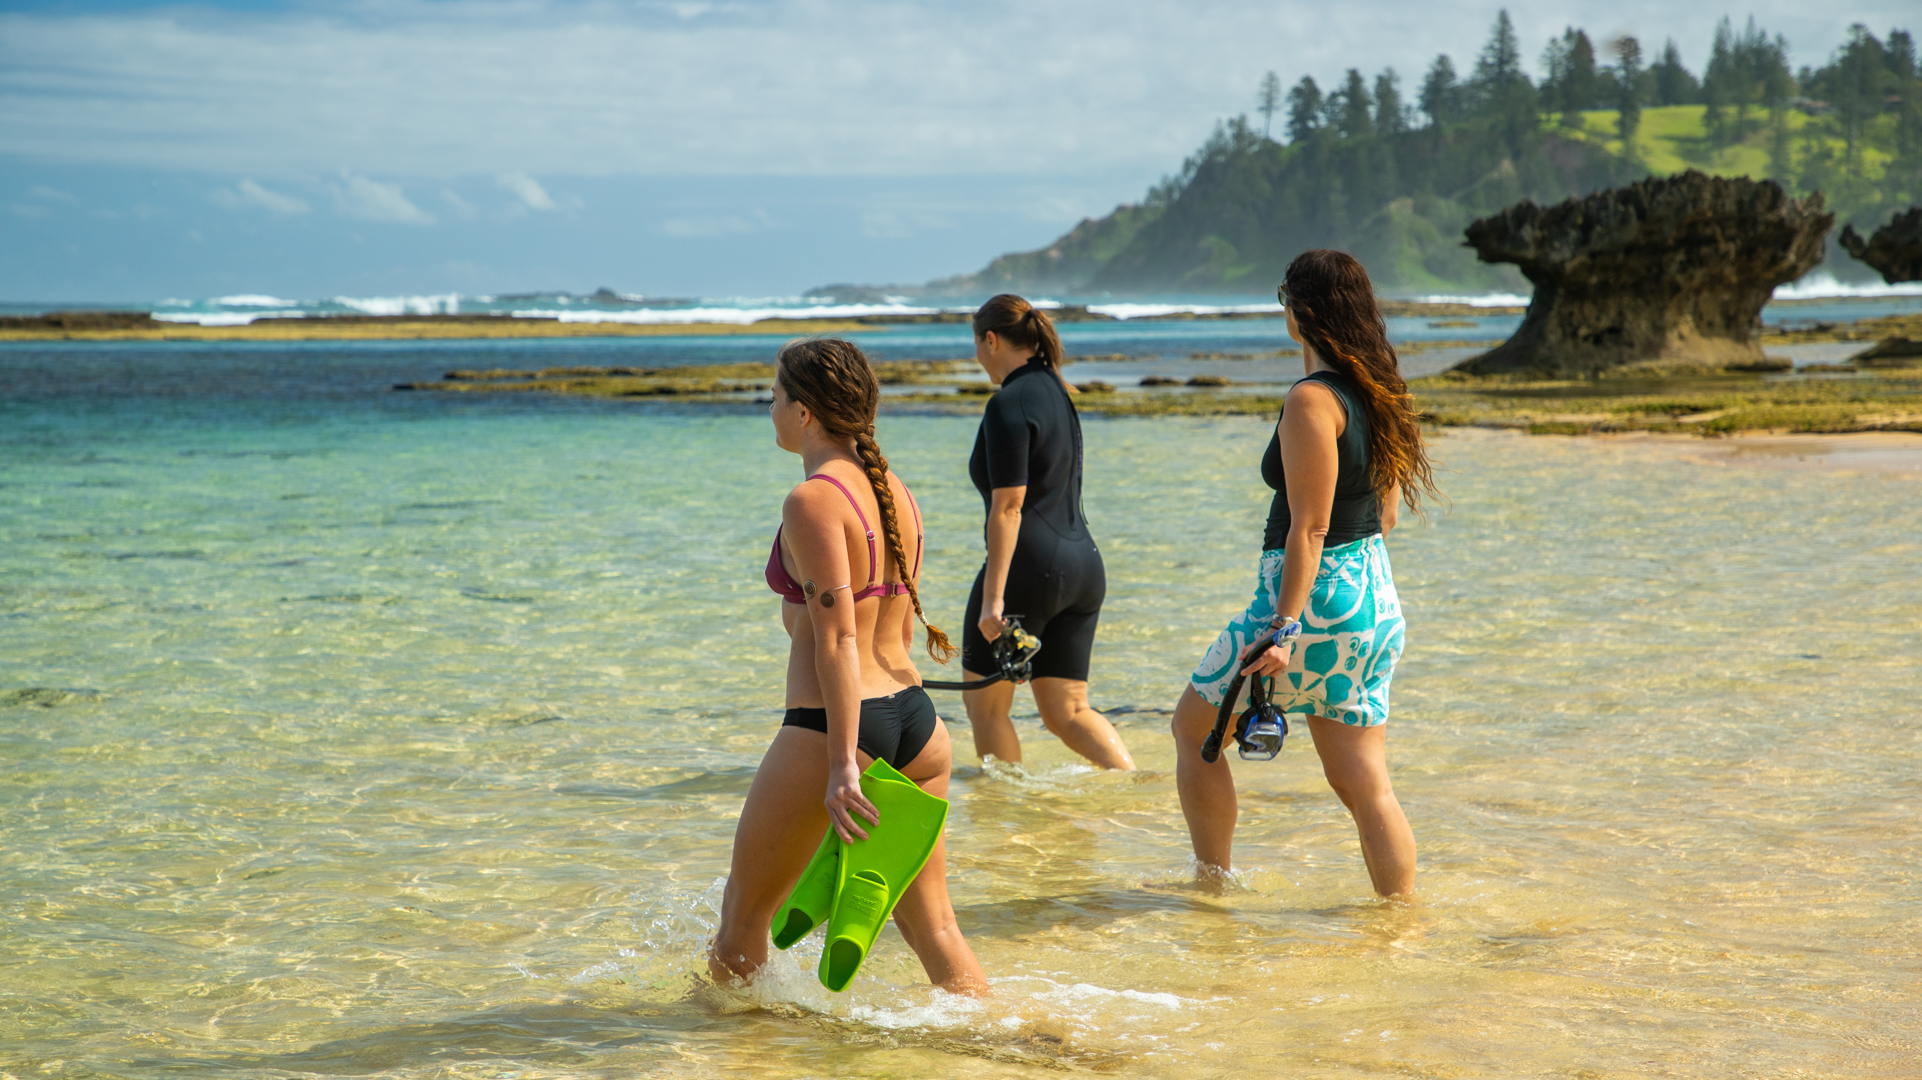 Three women are walking into the shallow turquoise sea holding masks, snorkels and flippers. There are waves in the distance and a rock formation to the right.